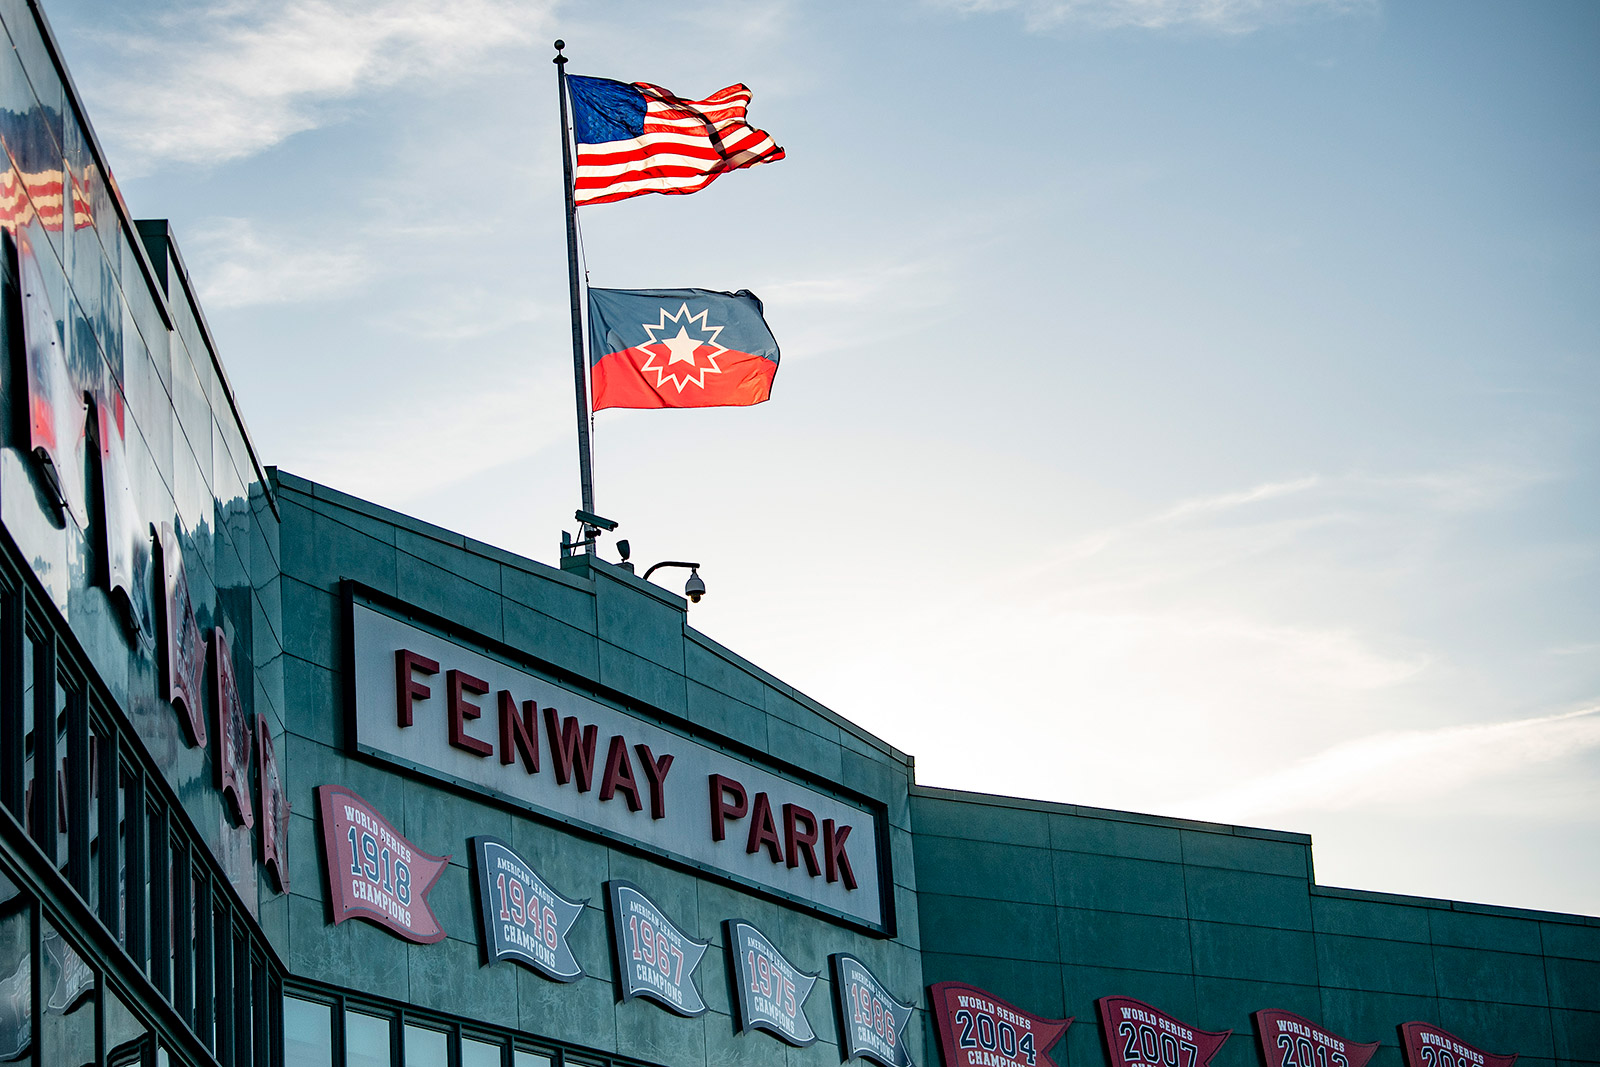 The Juneteenth flag flies over Fenway Park in Boston on Thursday.